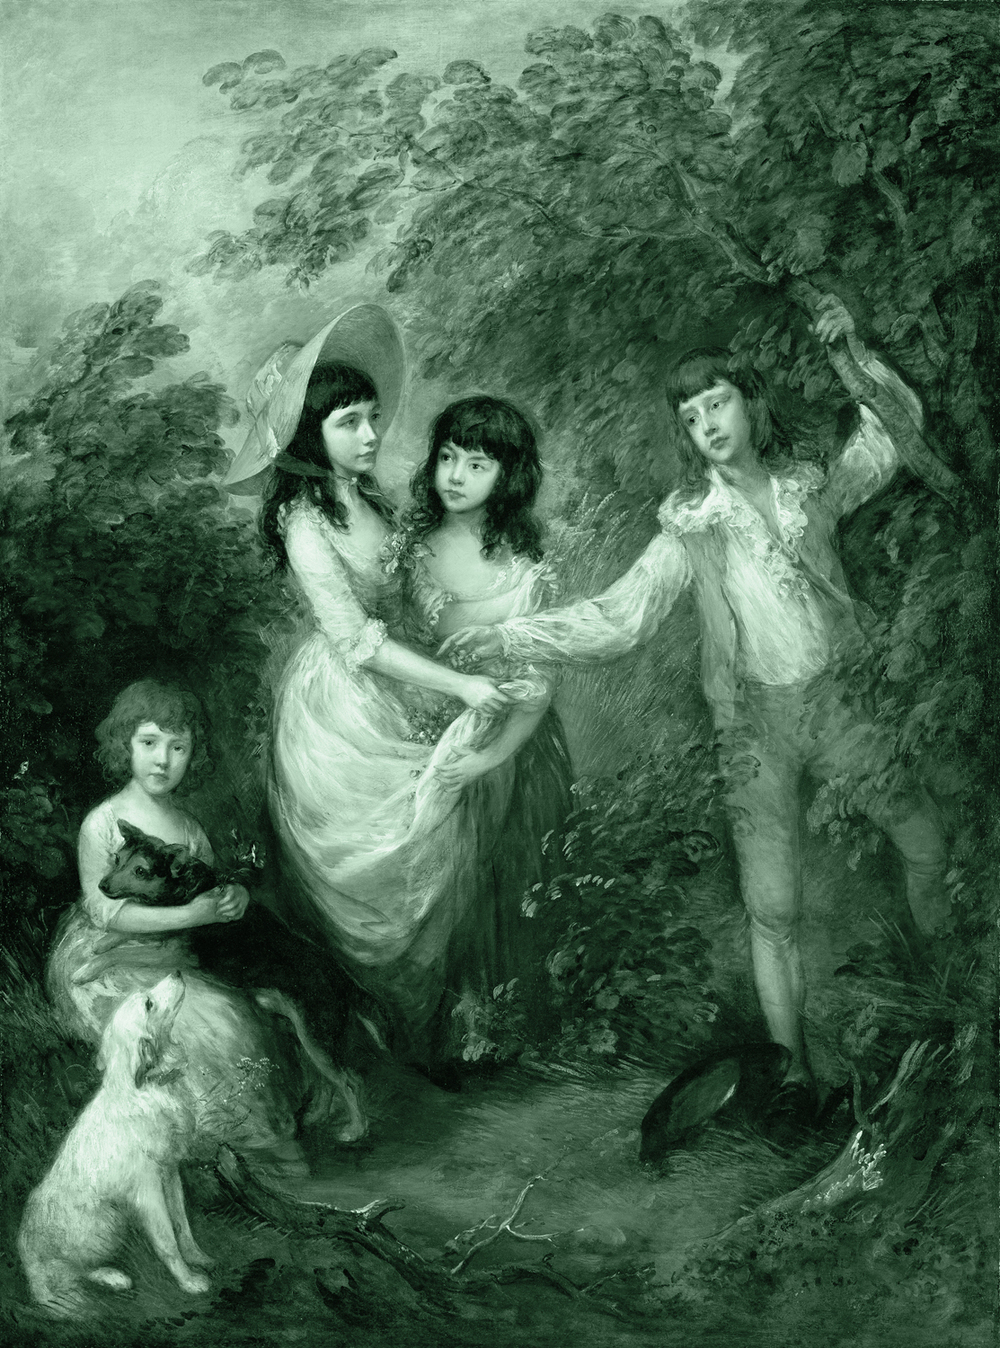 Gainsborough, Thomas. The Marsham Children. 1787. Public domain via Wikimedia Commons.